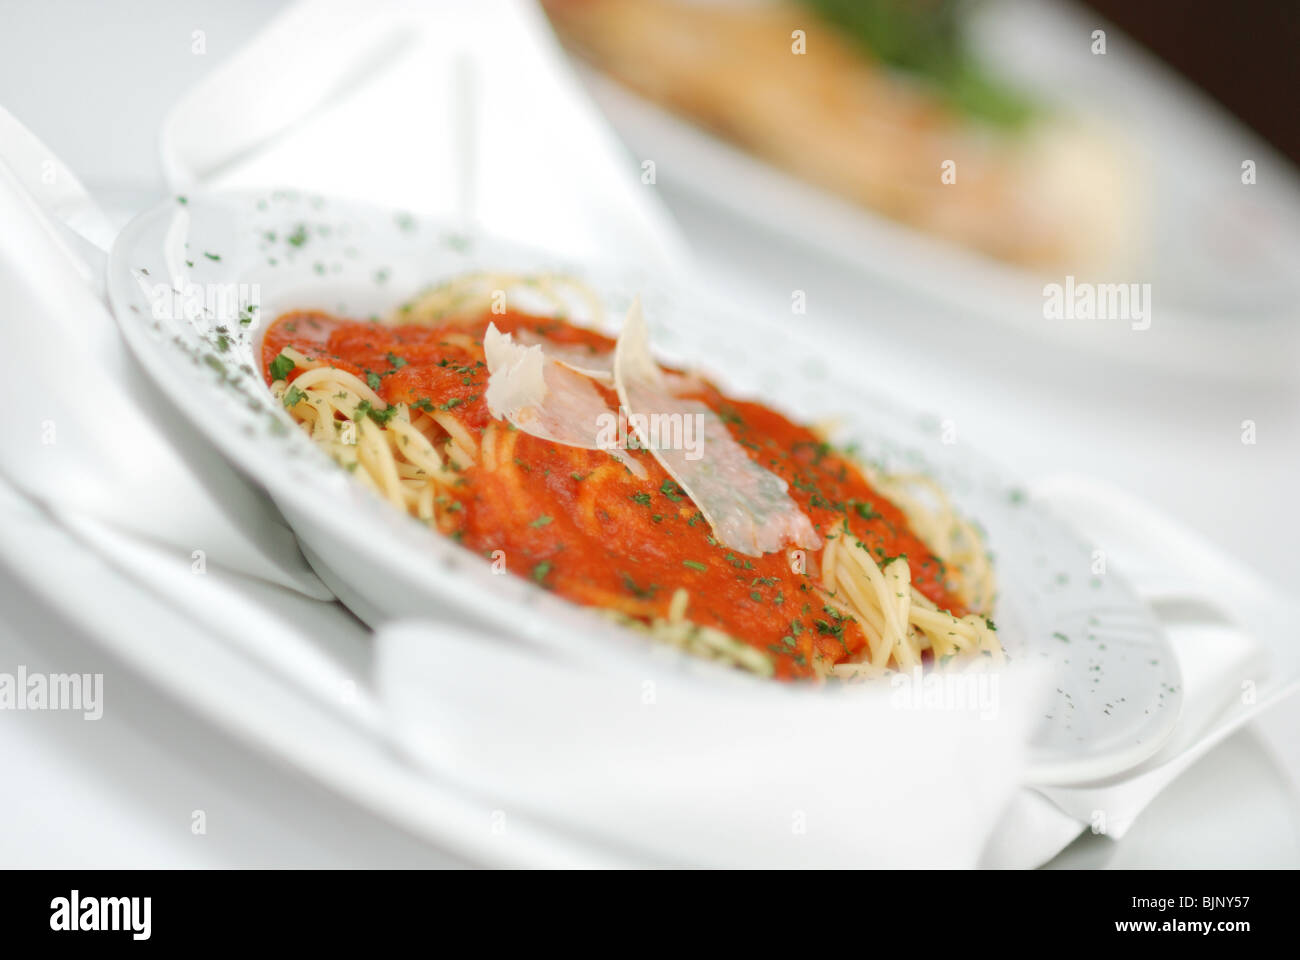 Pasta served at restaurant with tomato sauce and parmesan - Stock Image